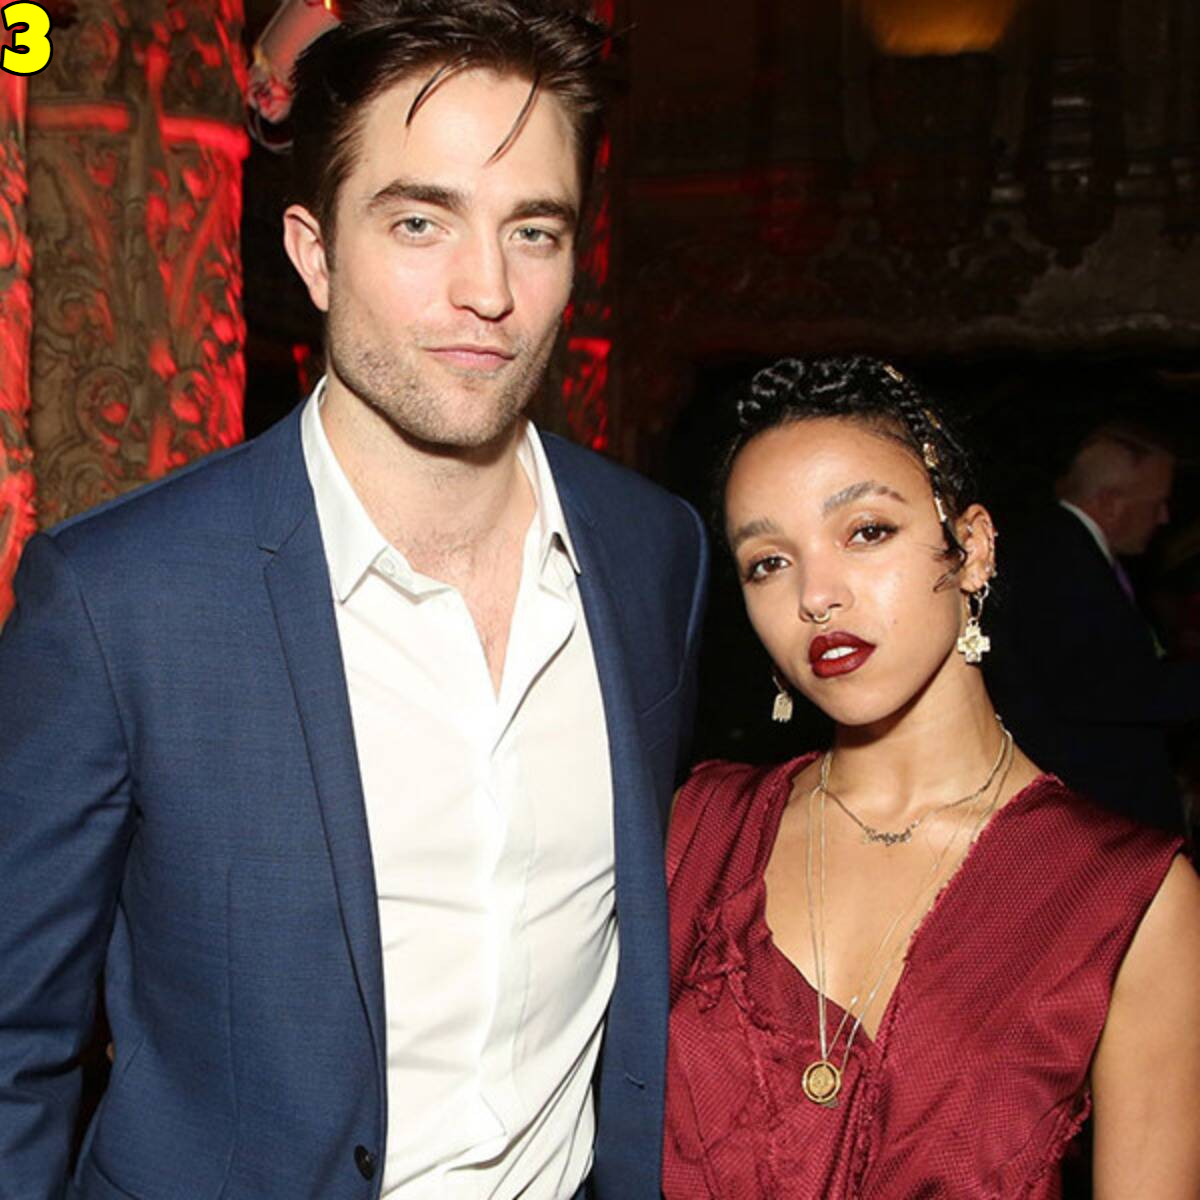 Robert Pattinson And FKA Twigs Dating